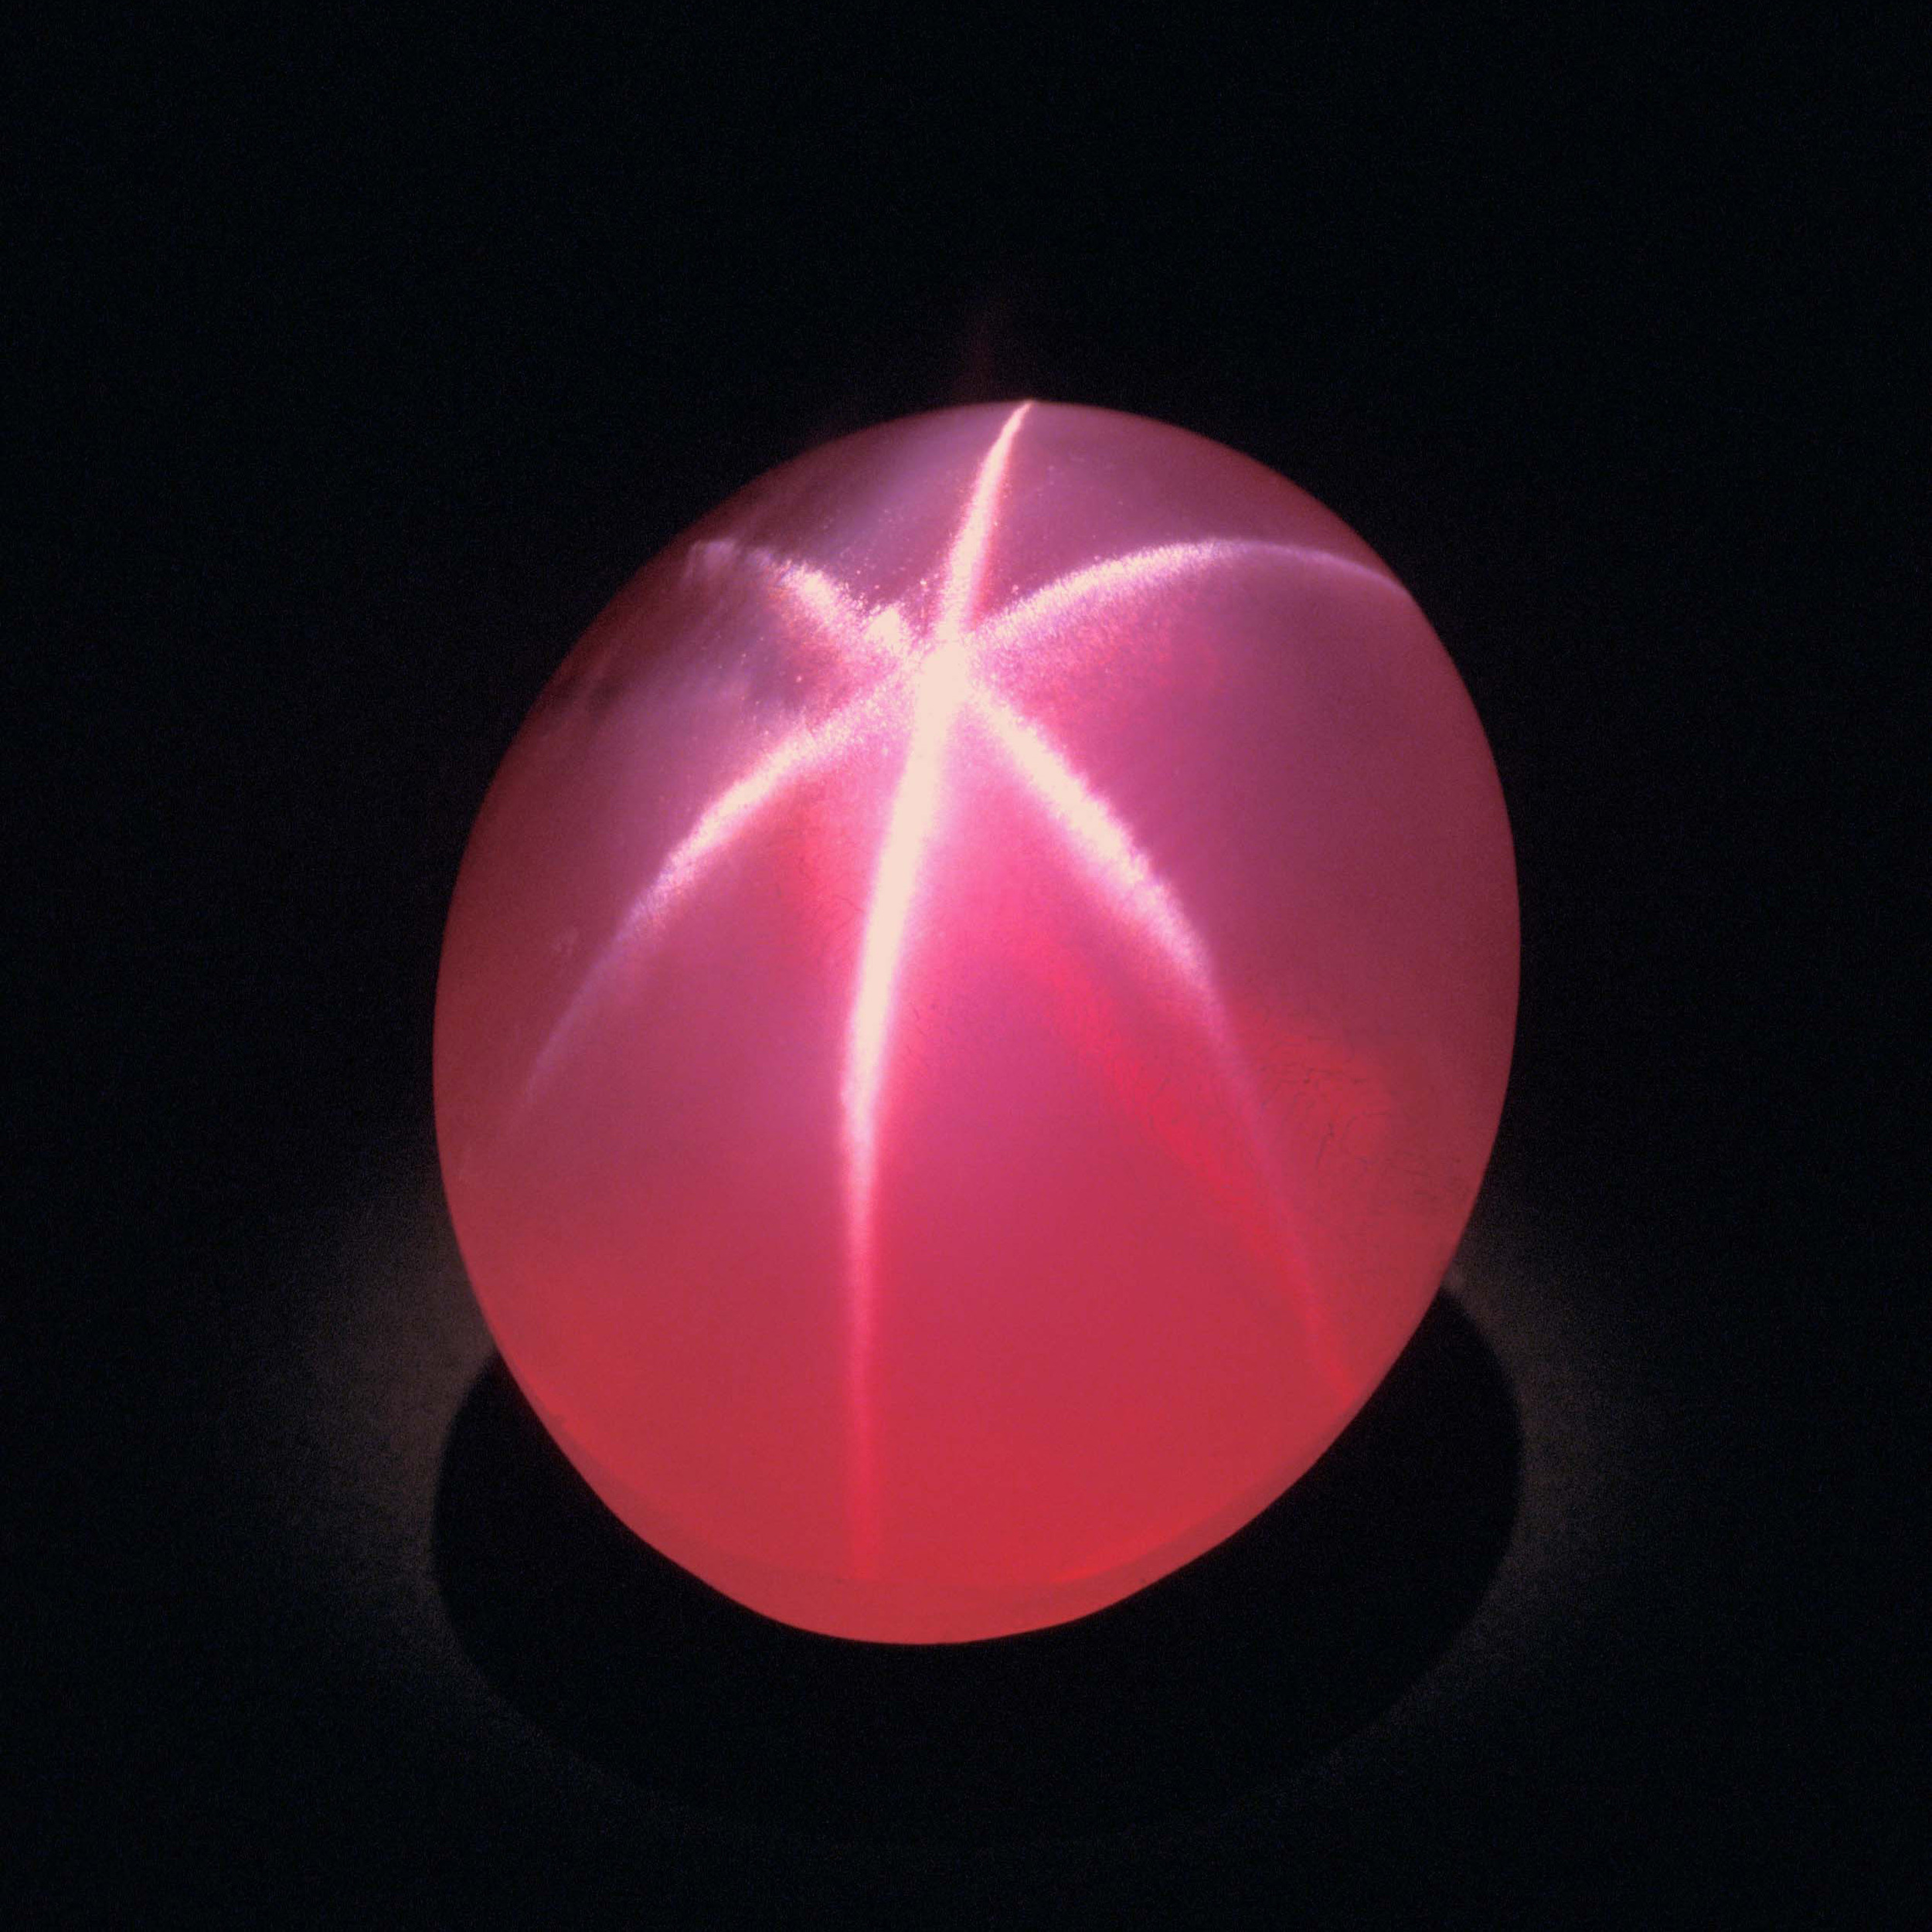 1st Place 2005 Cutting Edge Award, Phenomenal Division  16ct Star Ruby, The Star of Katandru Gifted to National Gem Collection